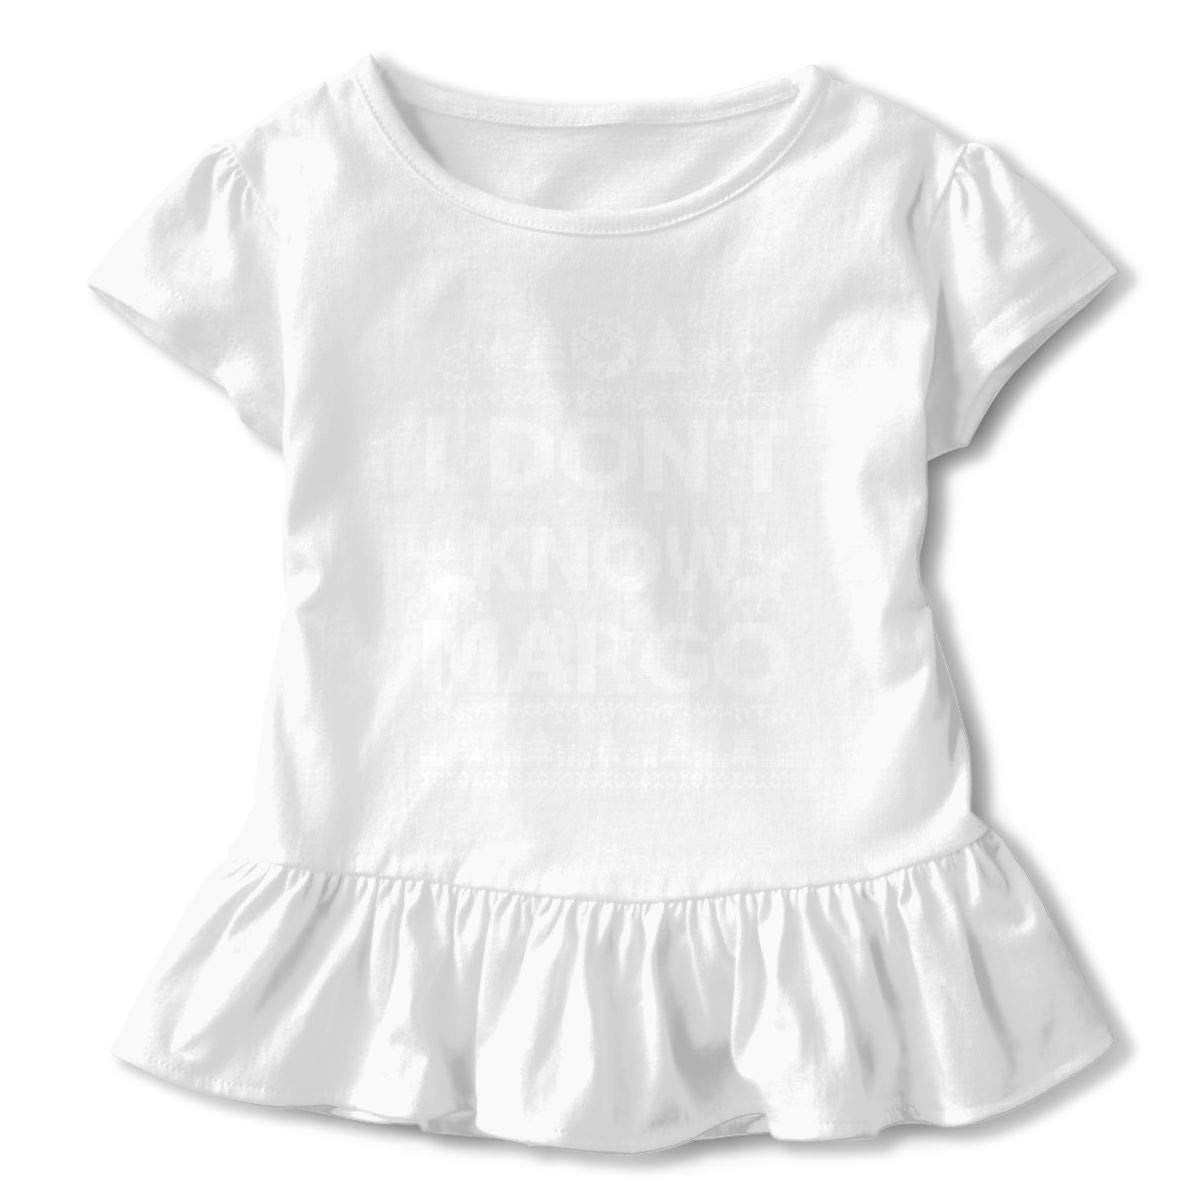 Il/_fullxfull.1358410952/_3we0 Toddler Baby Girls Short Sleeve ONeck Basic Shirts with Printed Designs in Front for School Birthday Party Gifts Ruffles Top White